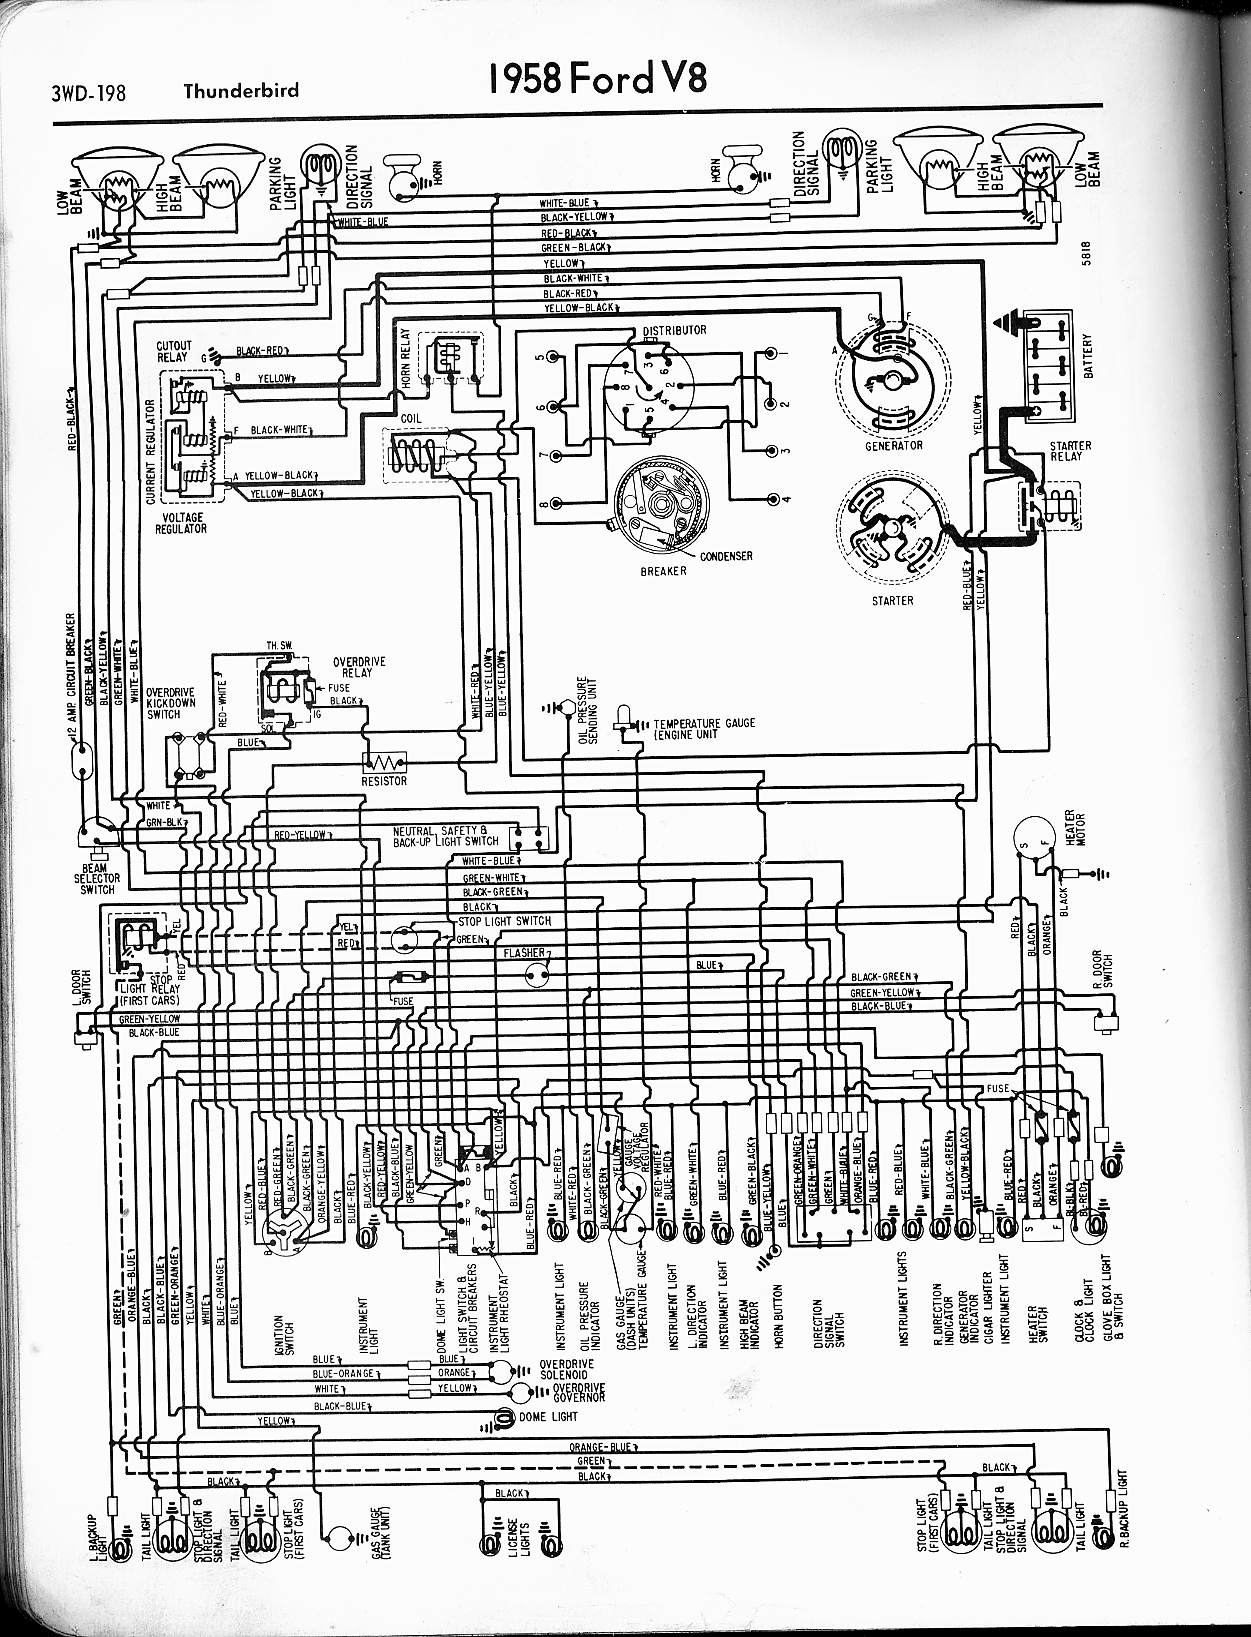 hight resolution of 1958 imperial wiring diagram wiring library rh 6 dirtytalk camgirls de 1958 cadillac 1959 imperial interior